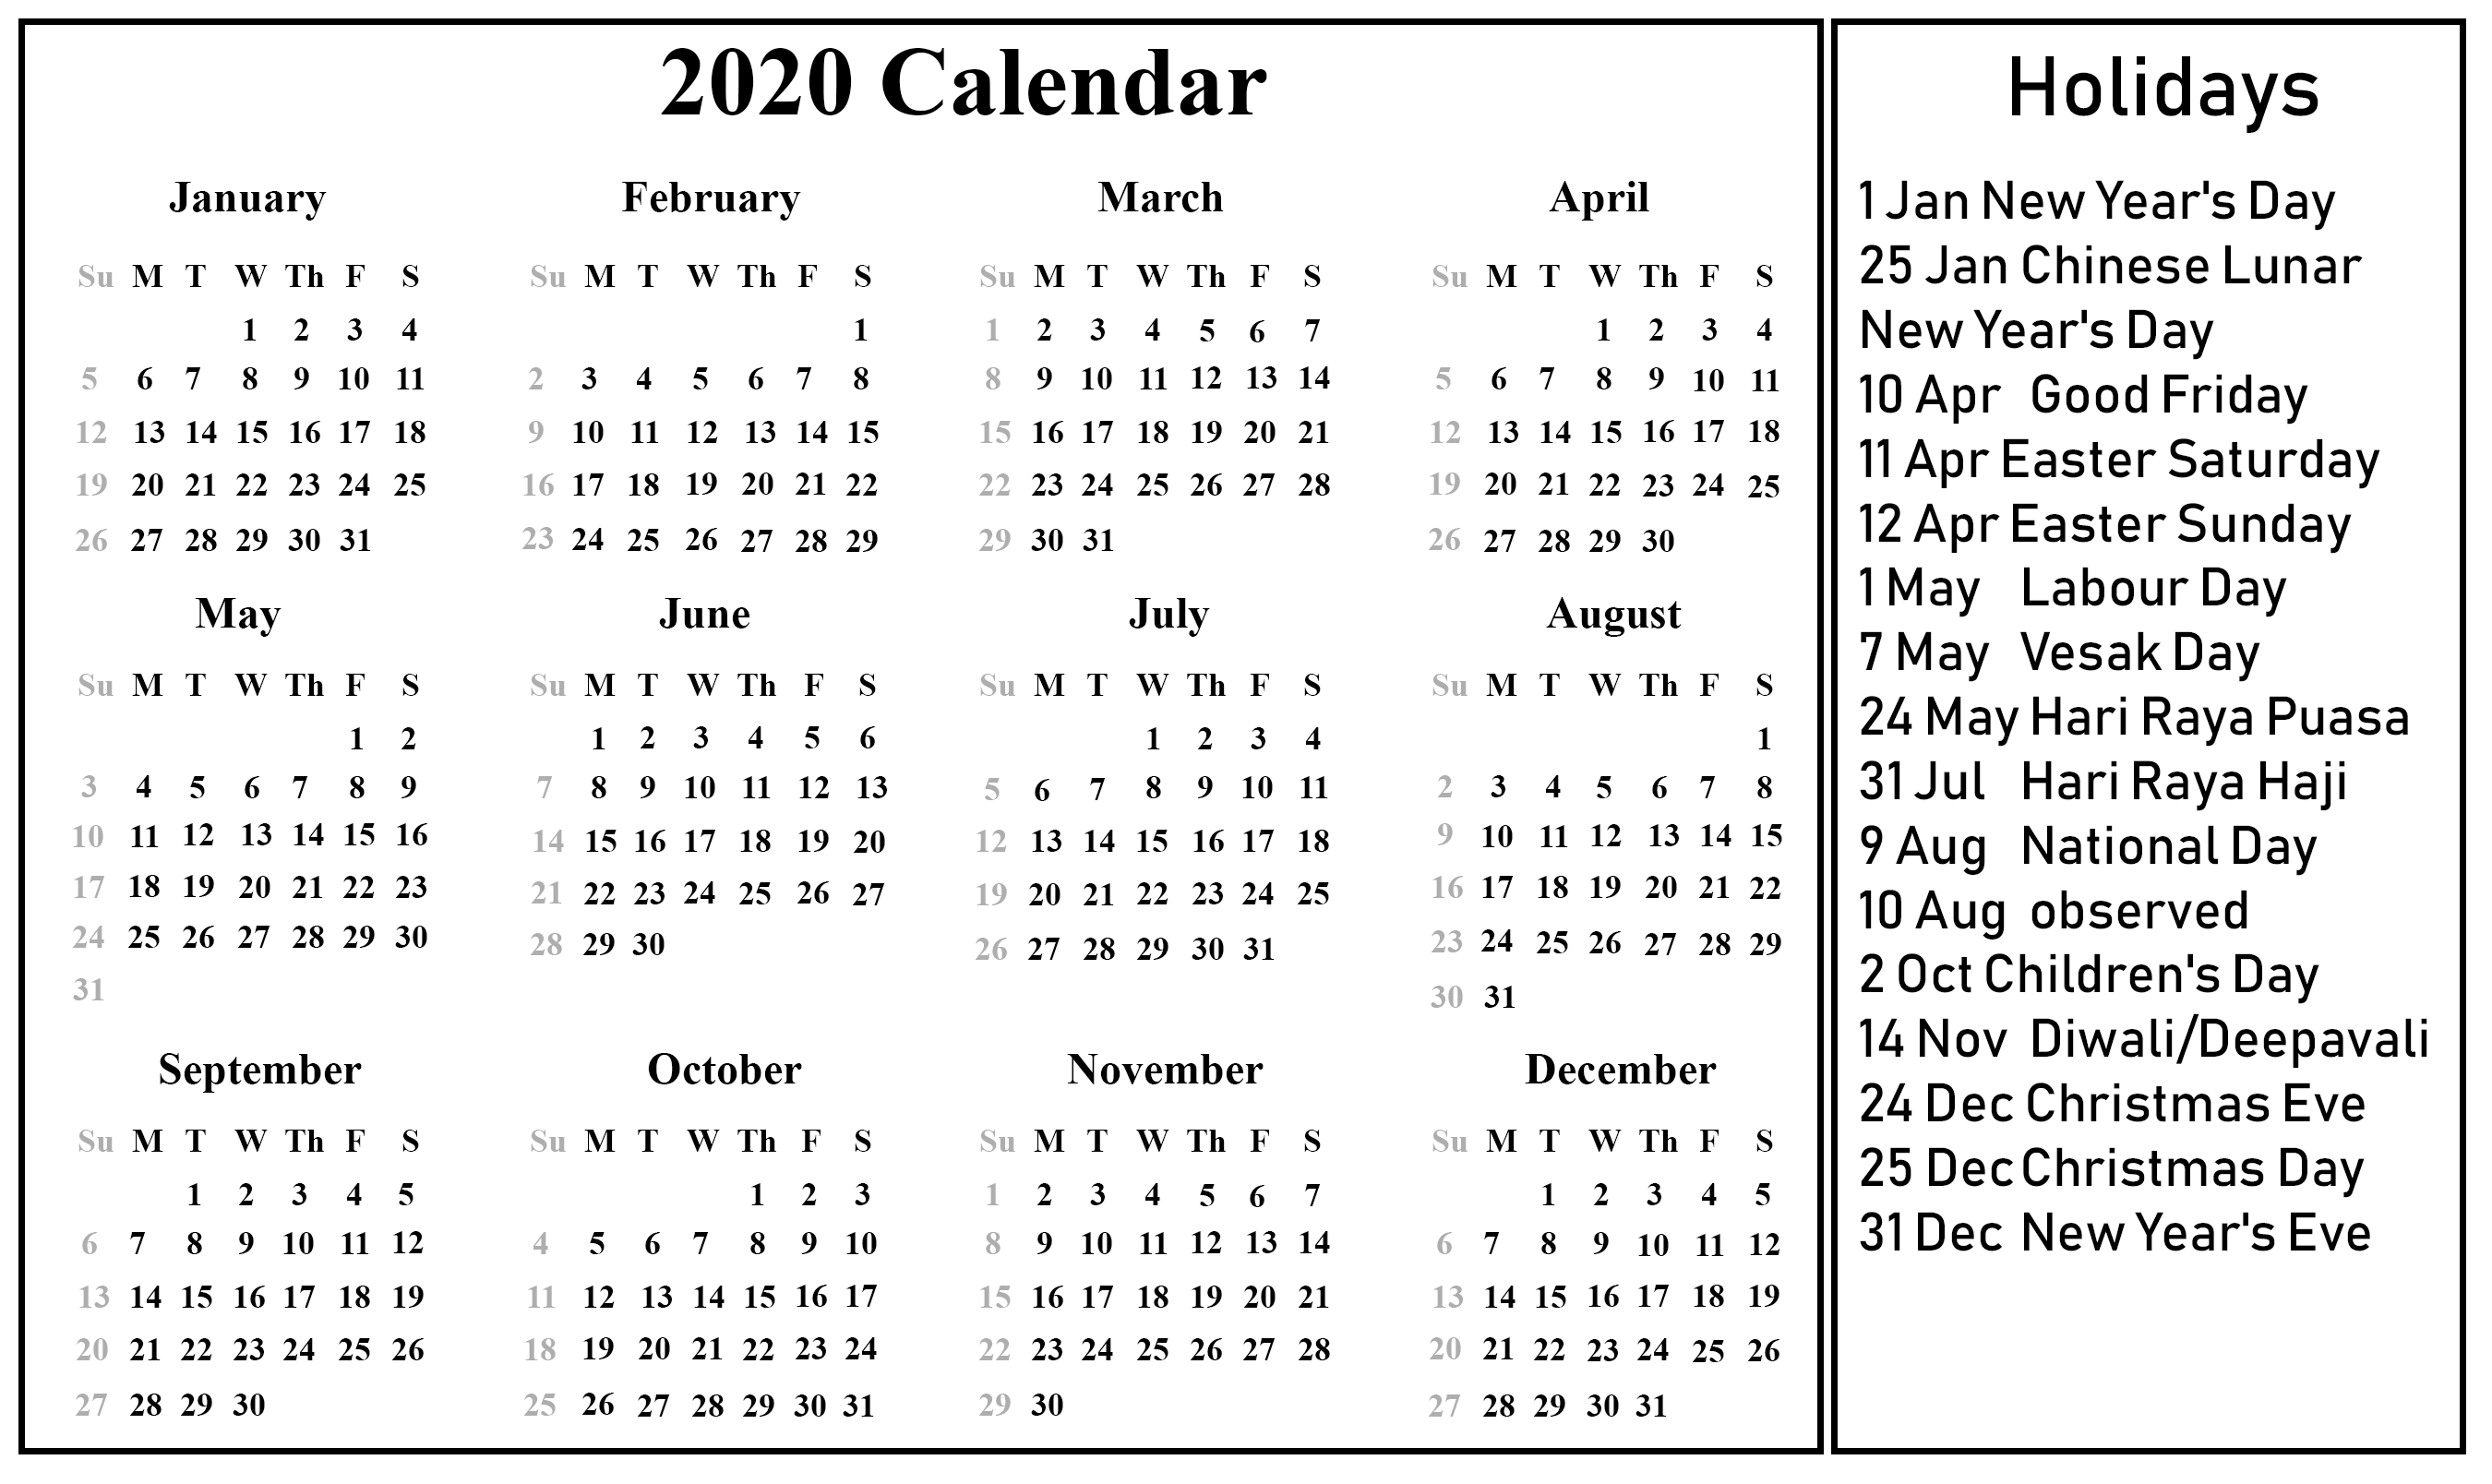 Editable Calendar 2020 with Holidays